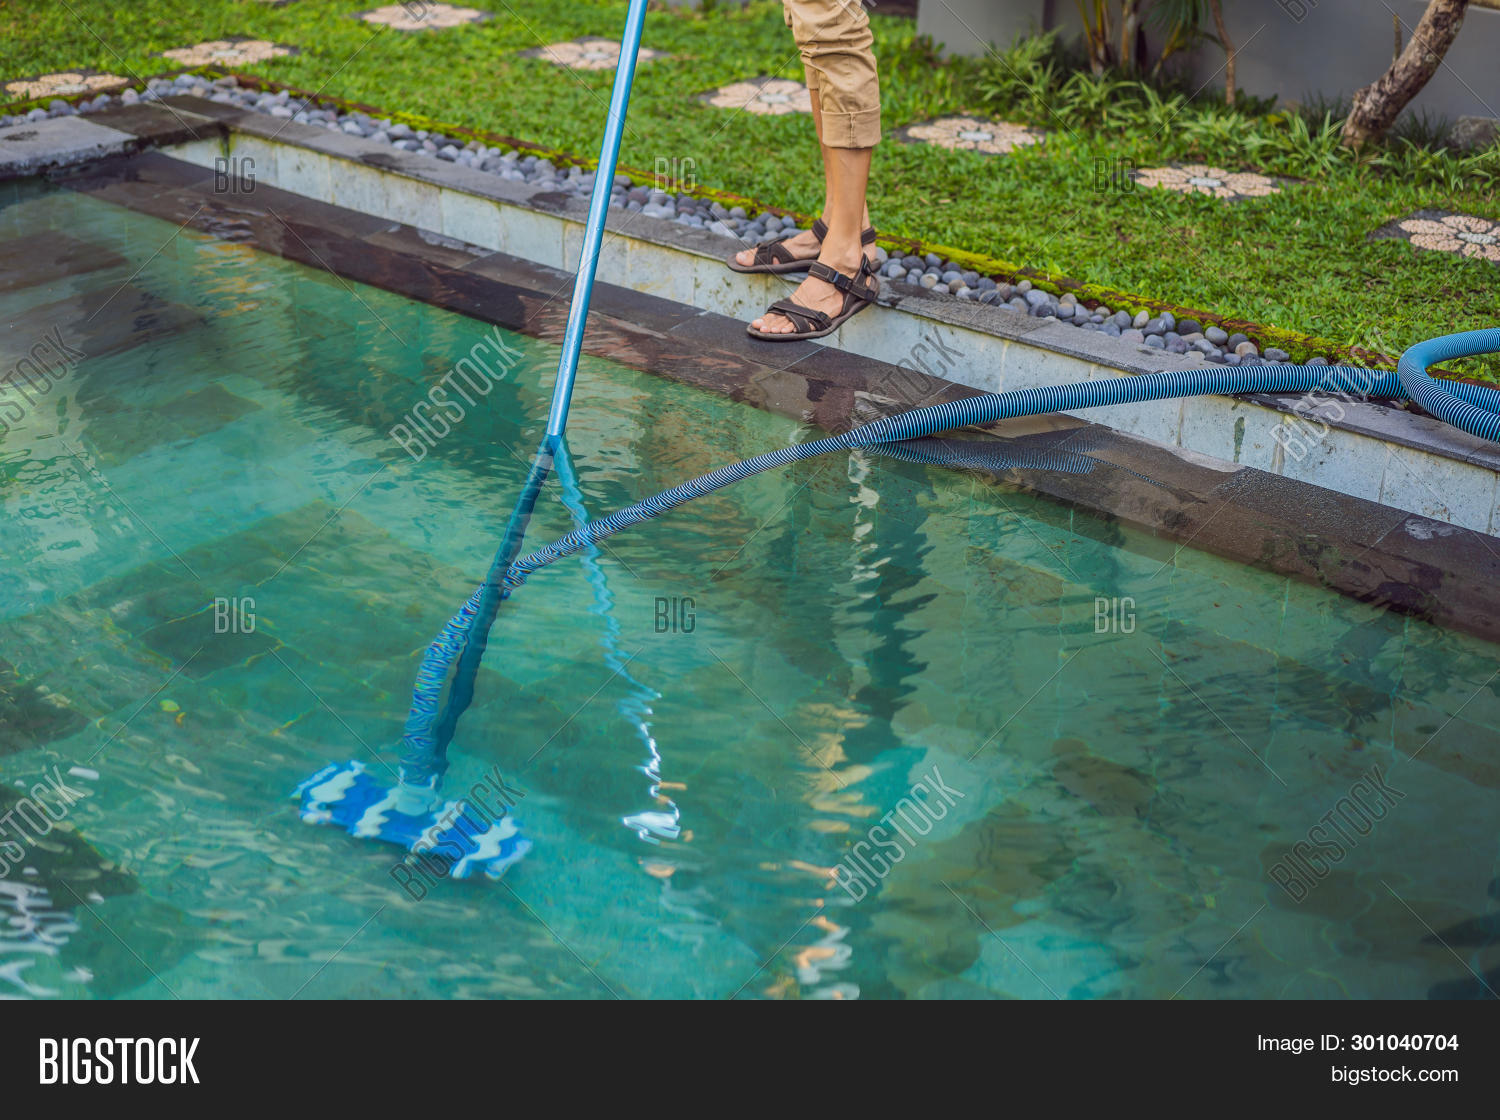 Cleaner Swimming Pool Image & Photo (Free Trial) | Bigstock